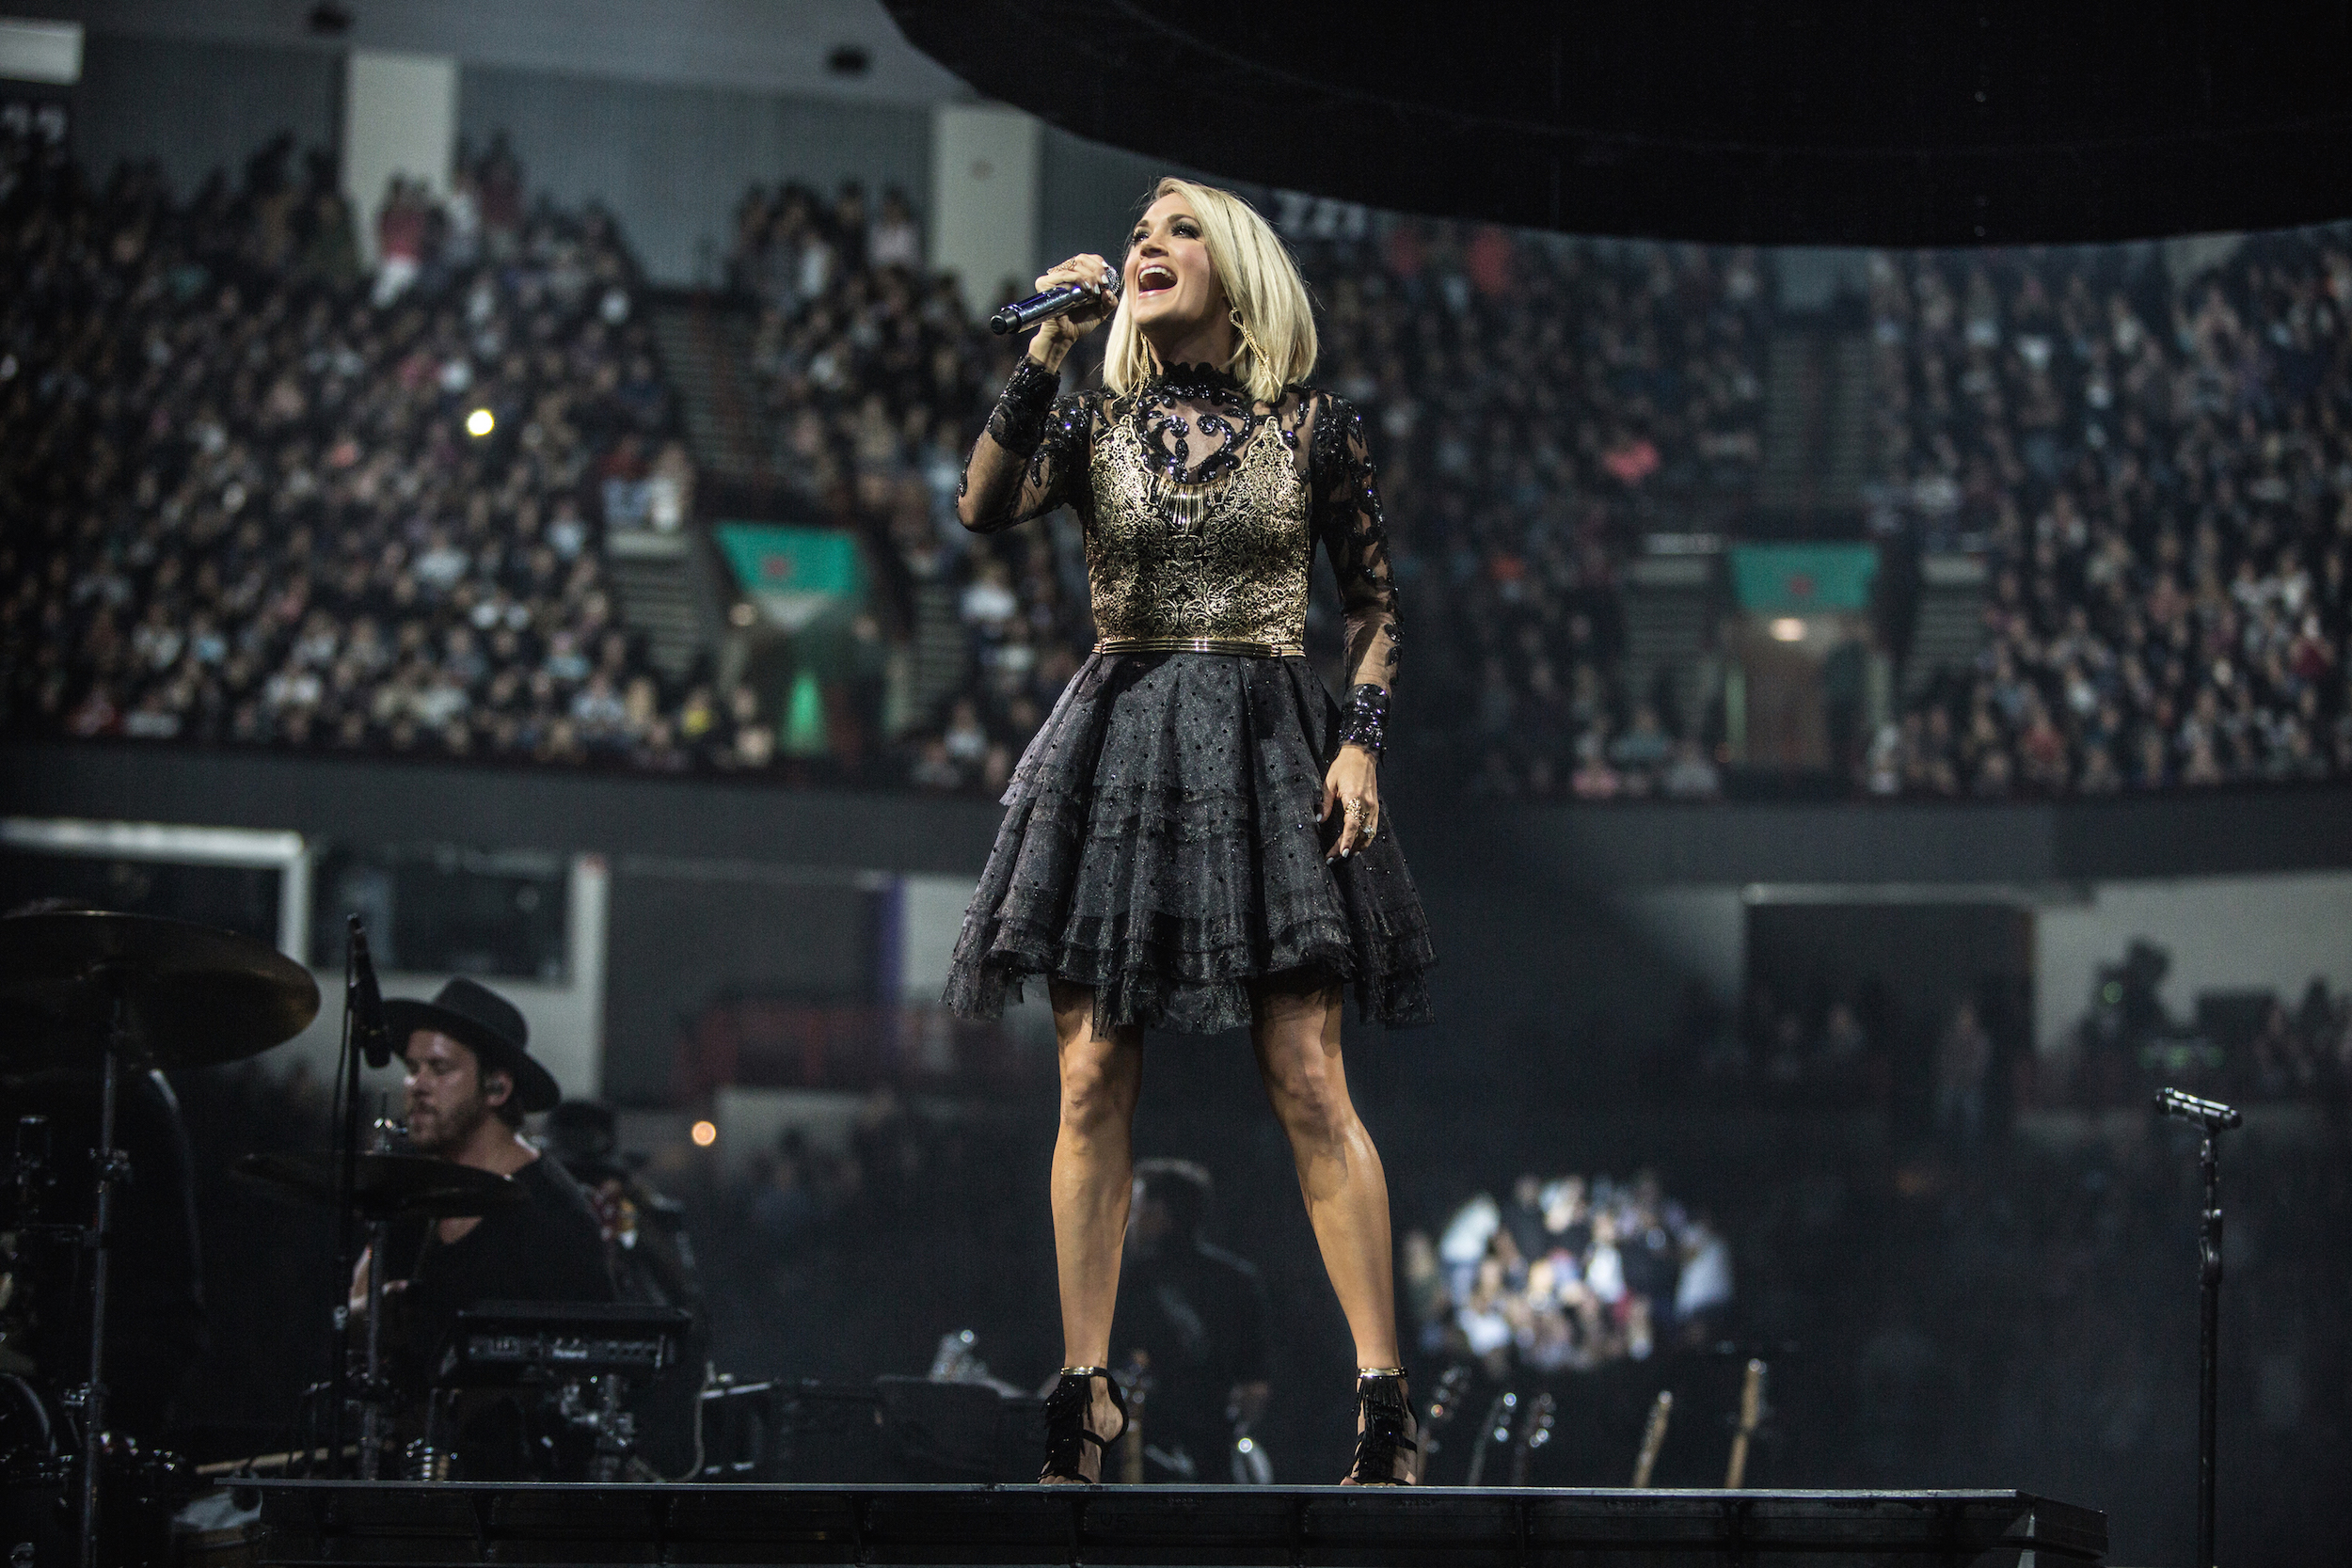 The Best Looks From Carrie Underwood's Impressive Storyteller Tour